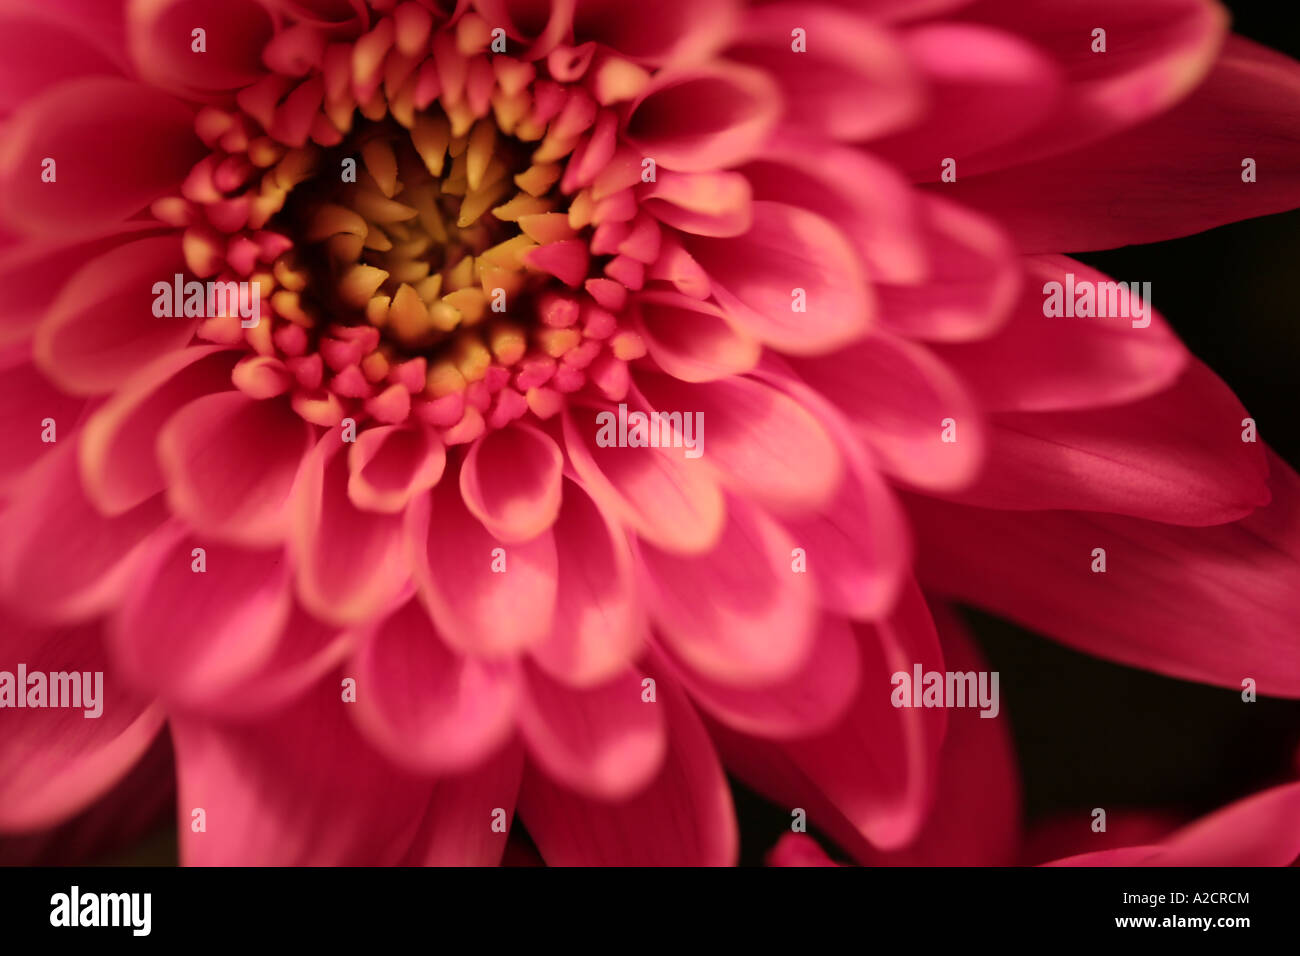 Single Gerbera Daisy photographed in natural light. A member of the sunflower family used to be thought of as a - Stock Image